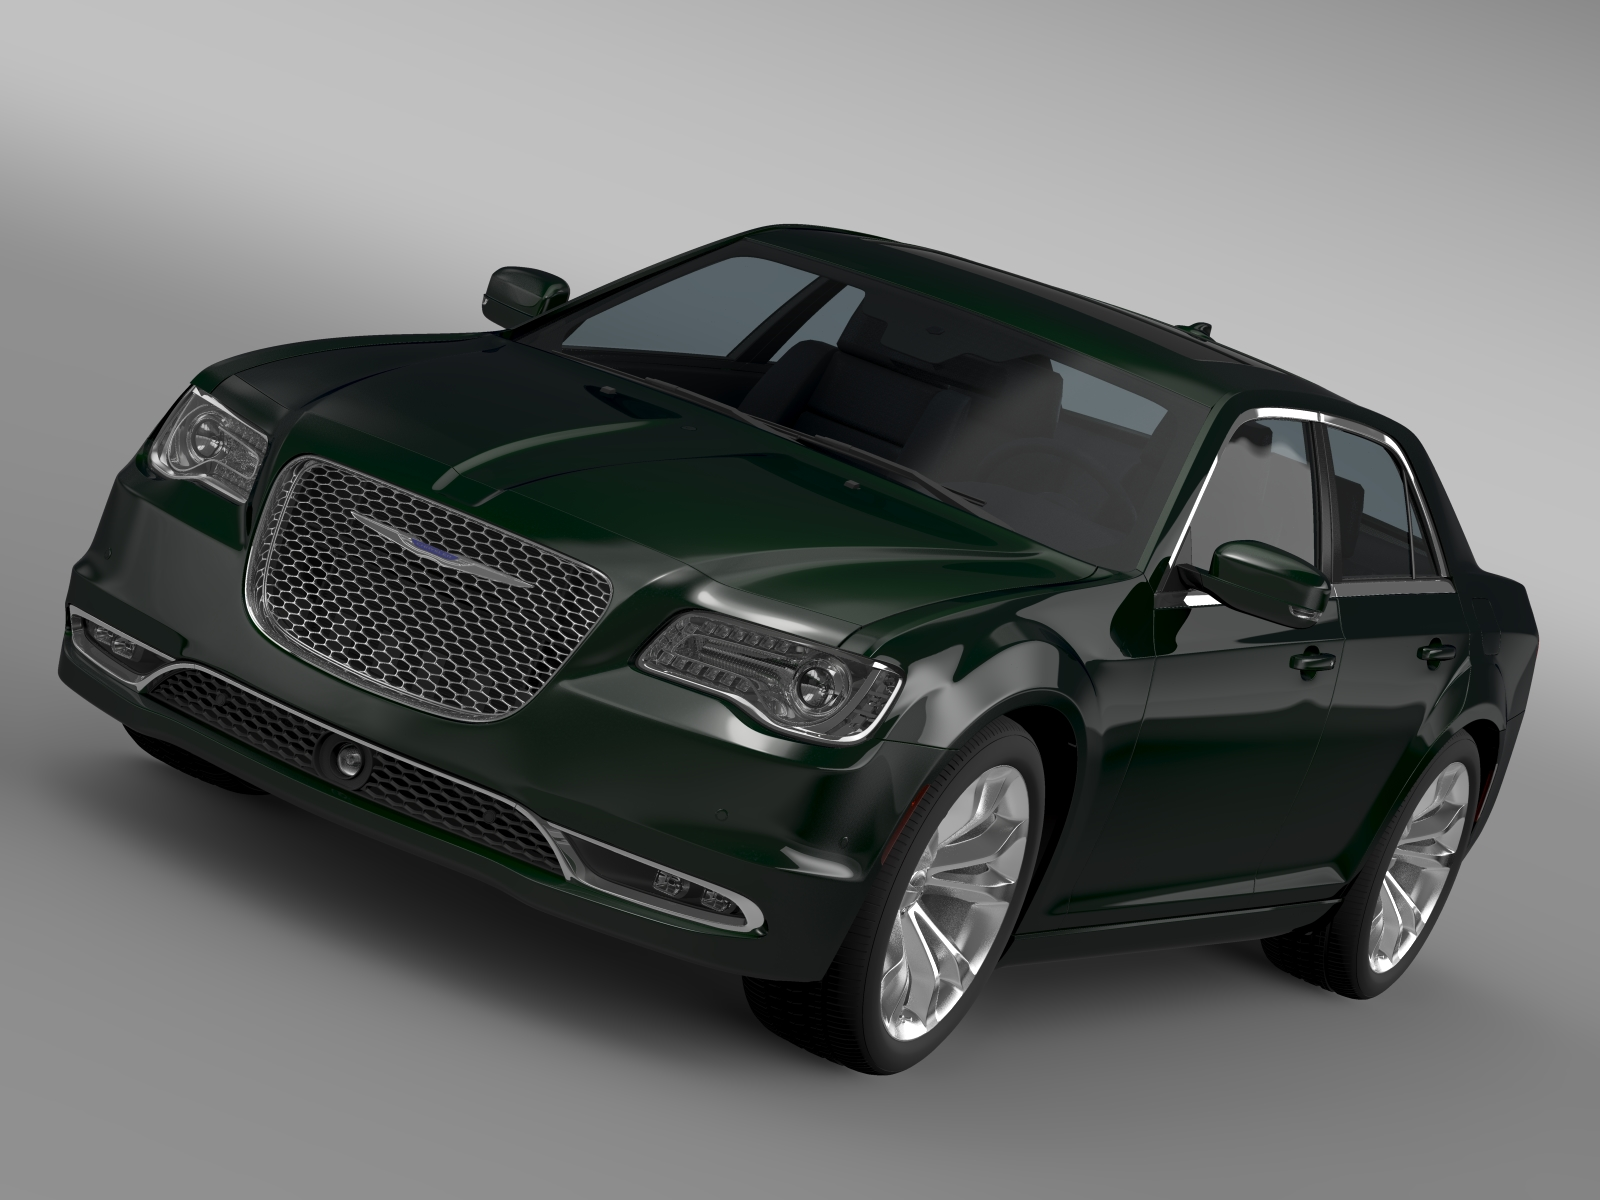 chrysler 300c platinasti lx2 2016 3d model 3ds max fbx c4d